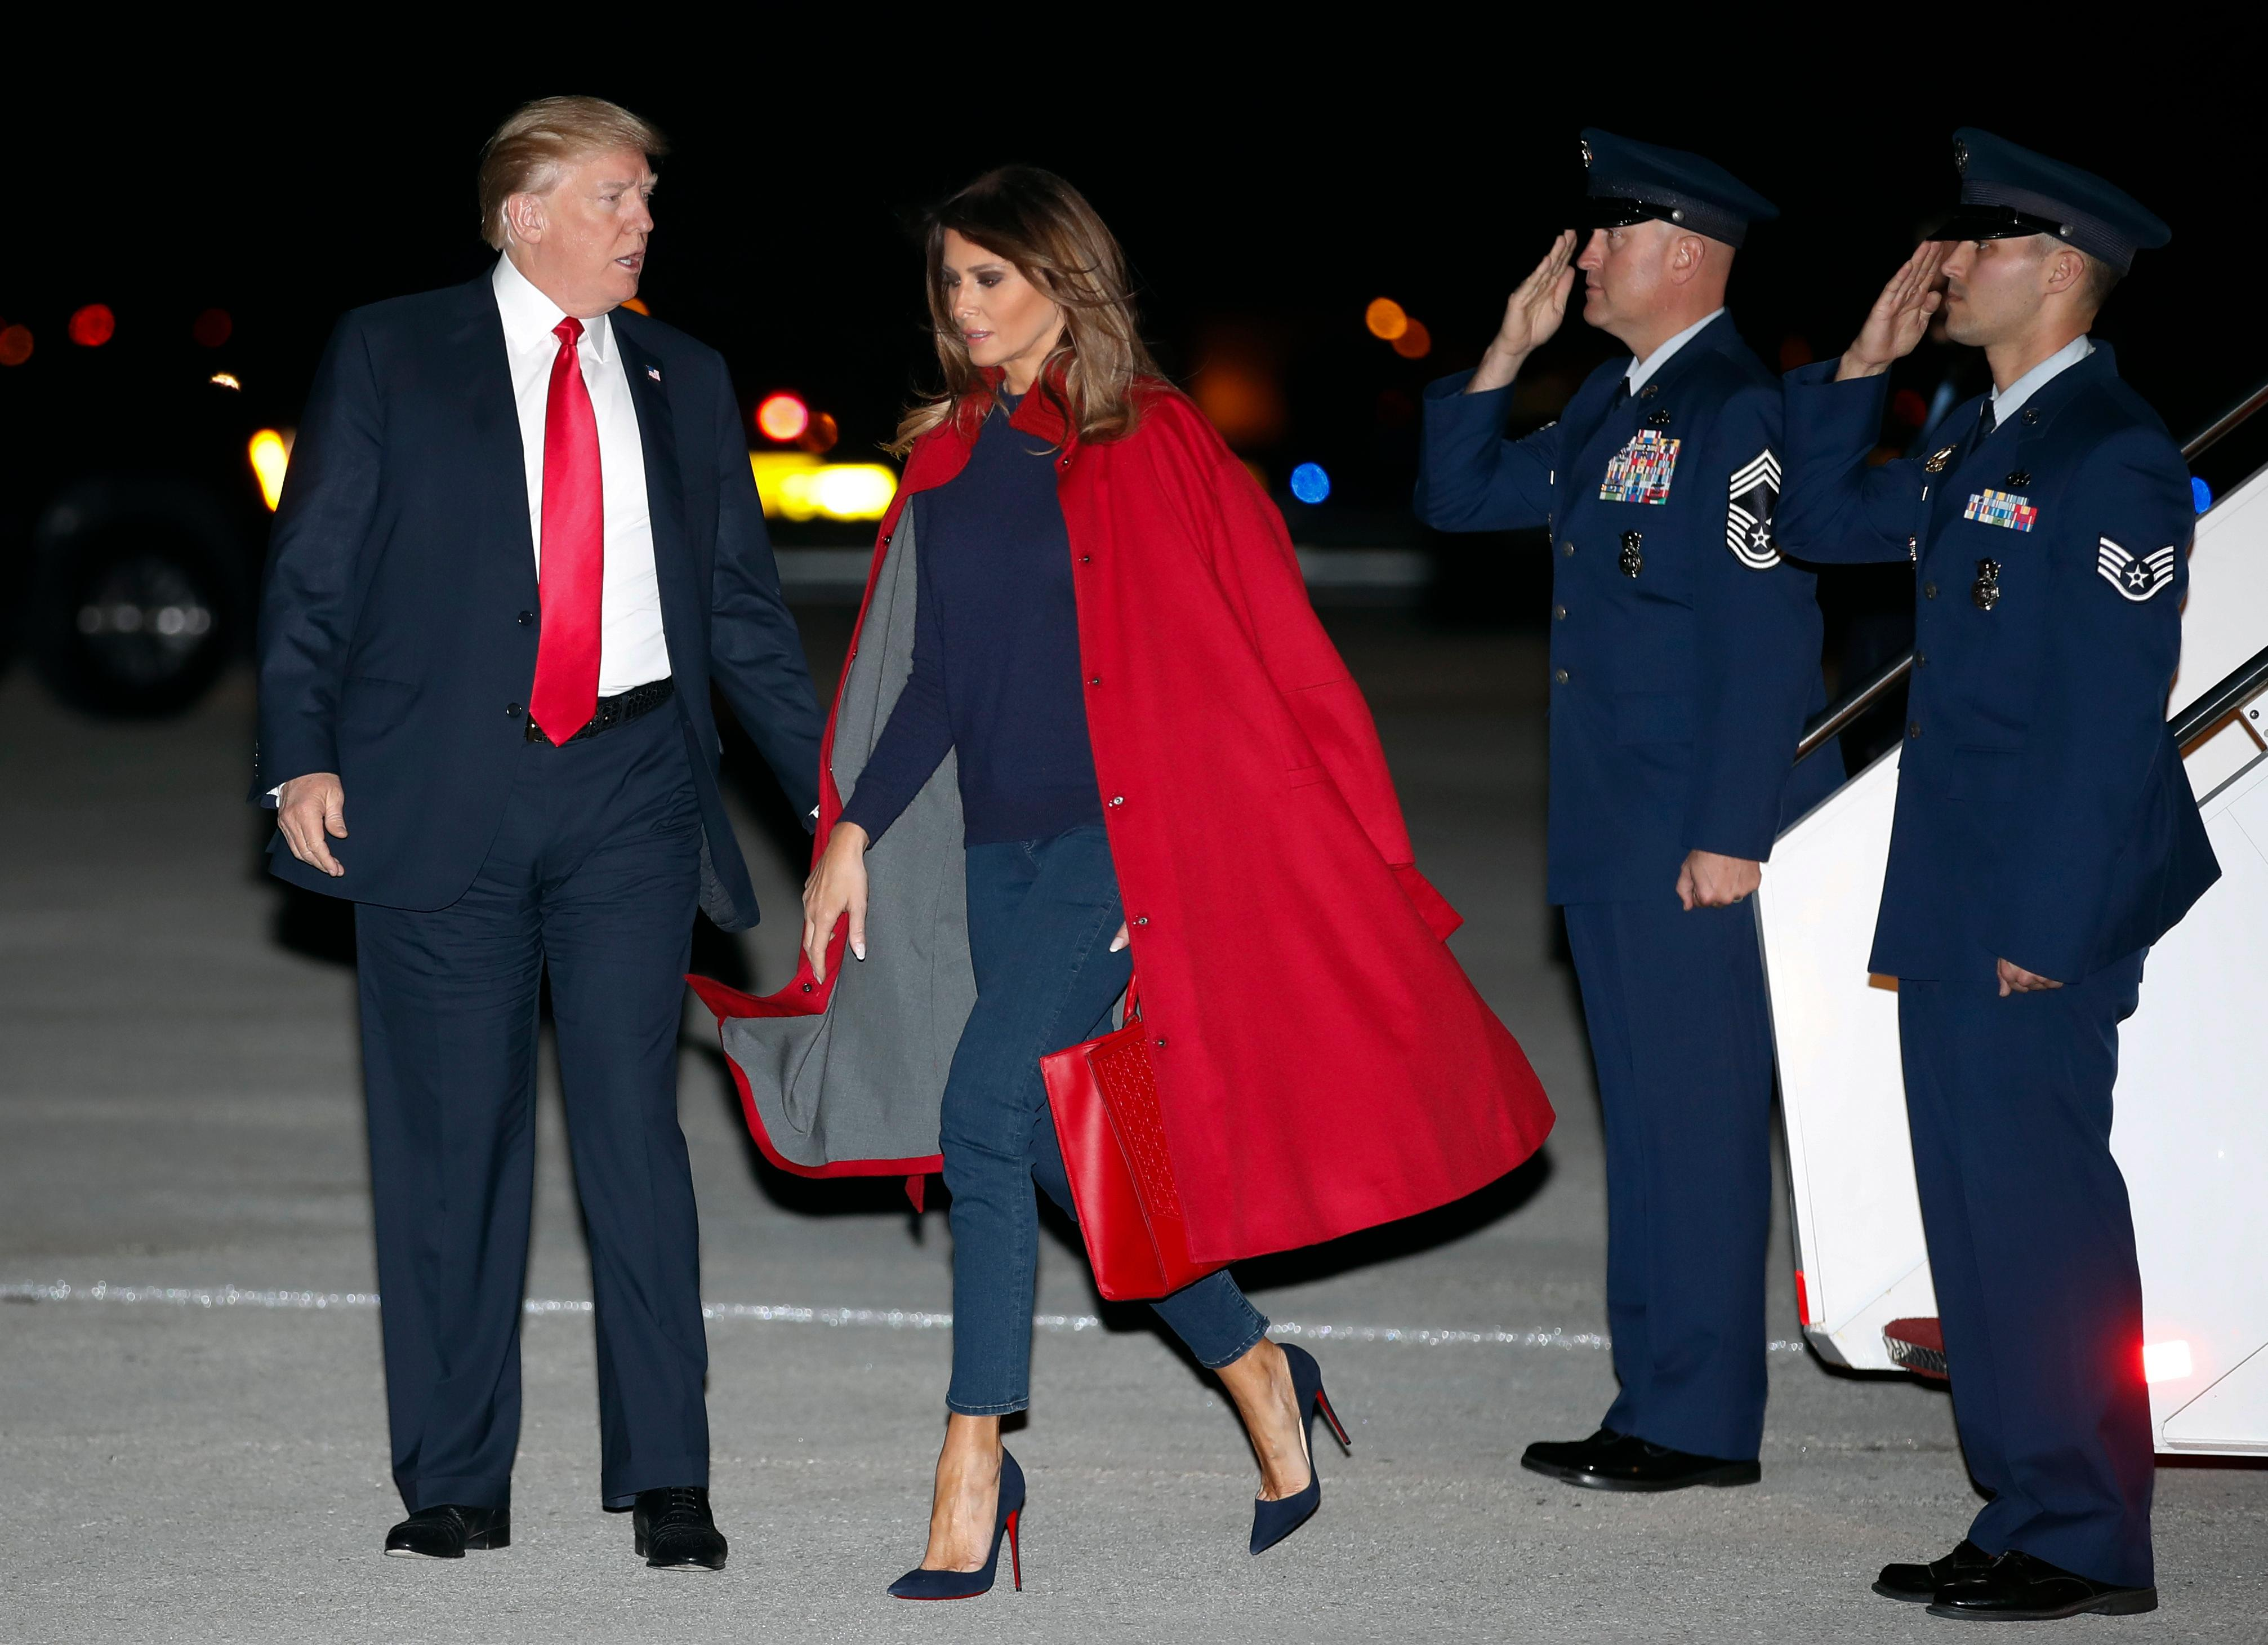 President Donald Trump and first lady Melania Trump arrive on Air Force One at Palm Beach International Airport, in West Palm Beach, Fla., Friday, Feb. 2, 2018. (AP Photo/Carolyn Kaster)